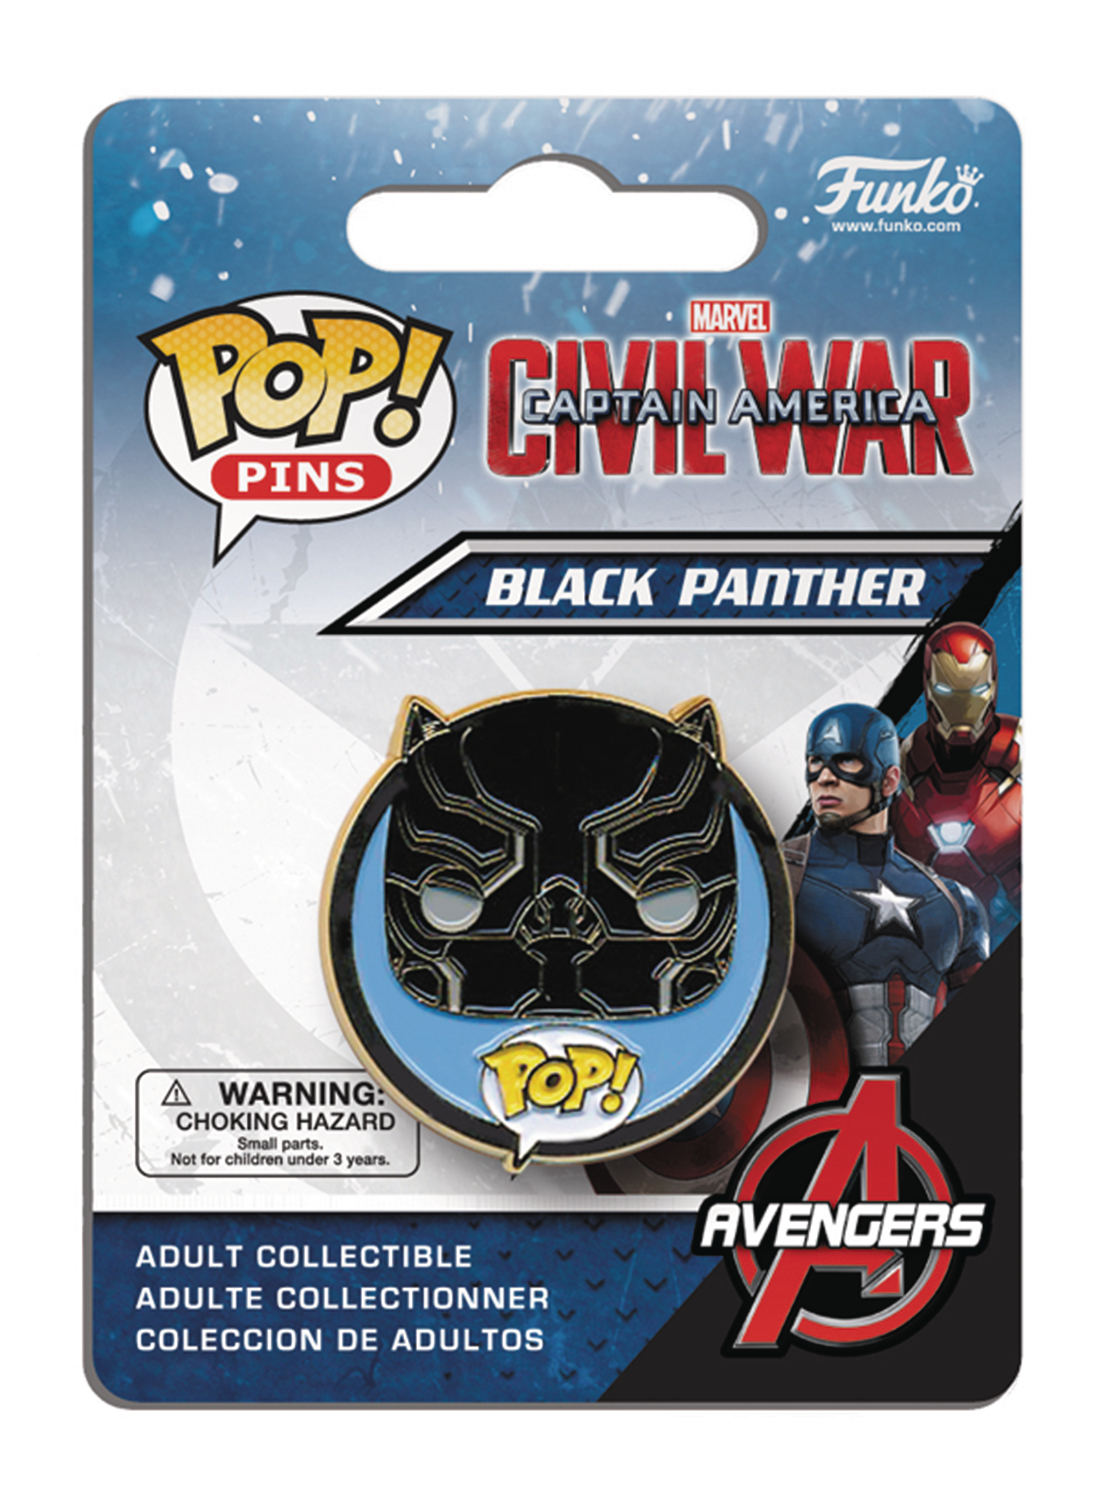 POP PINS CAPTAIN AMERICA 3 BLACK PANTHER